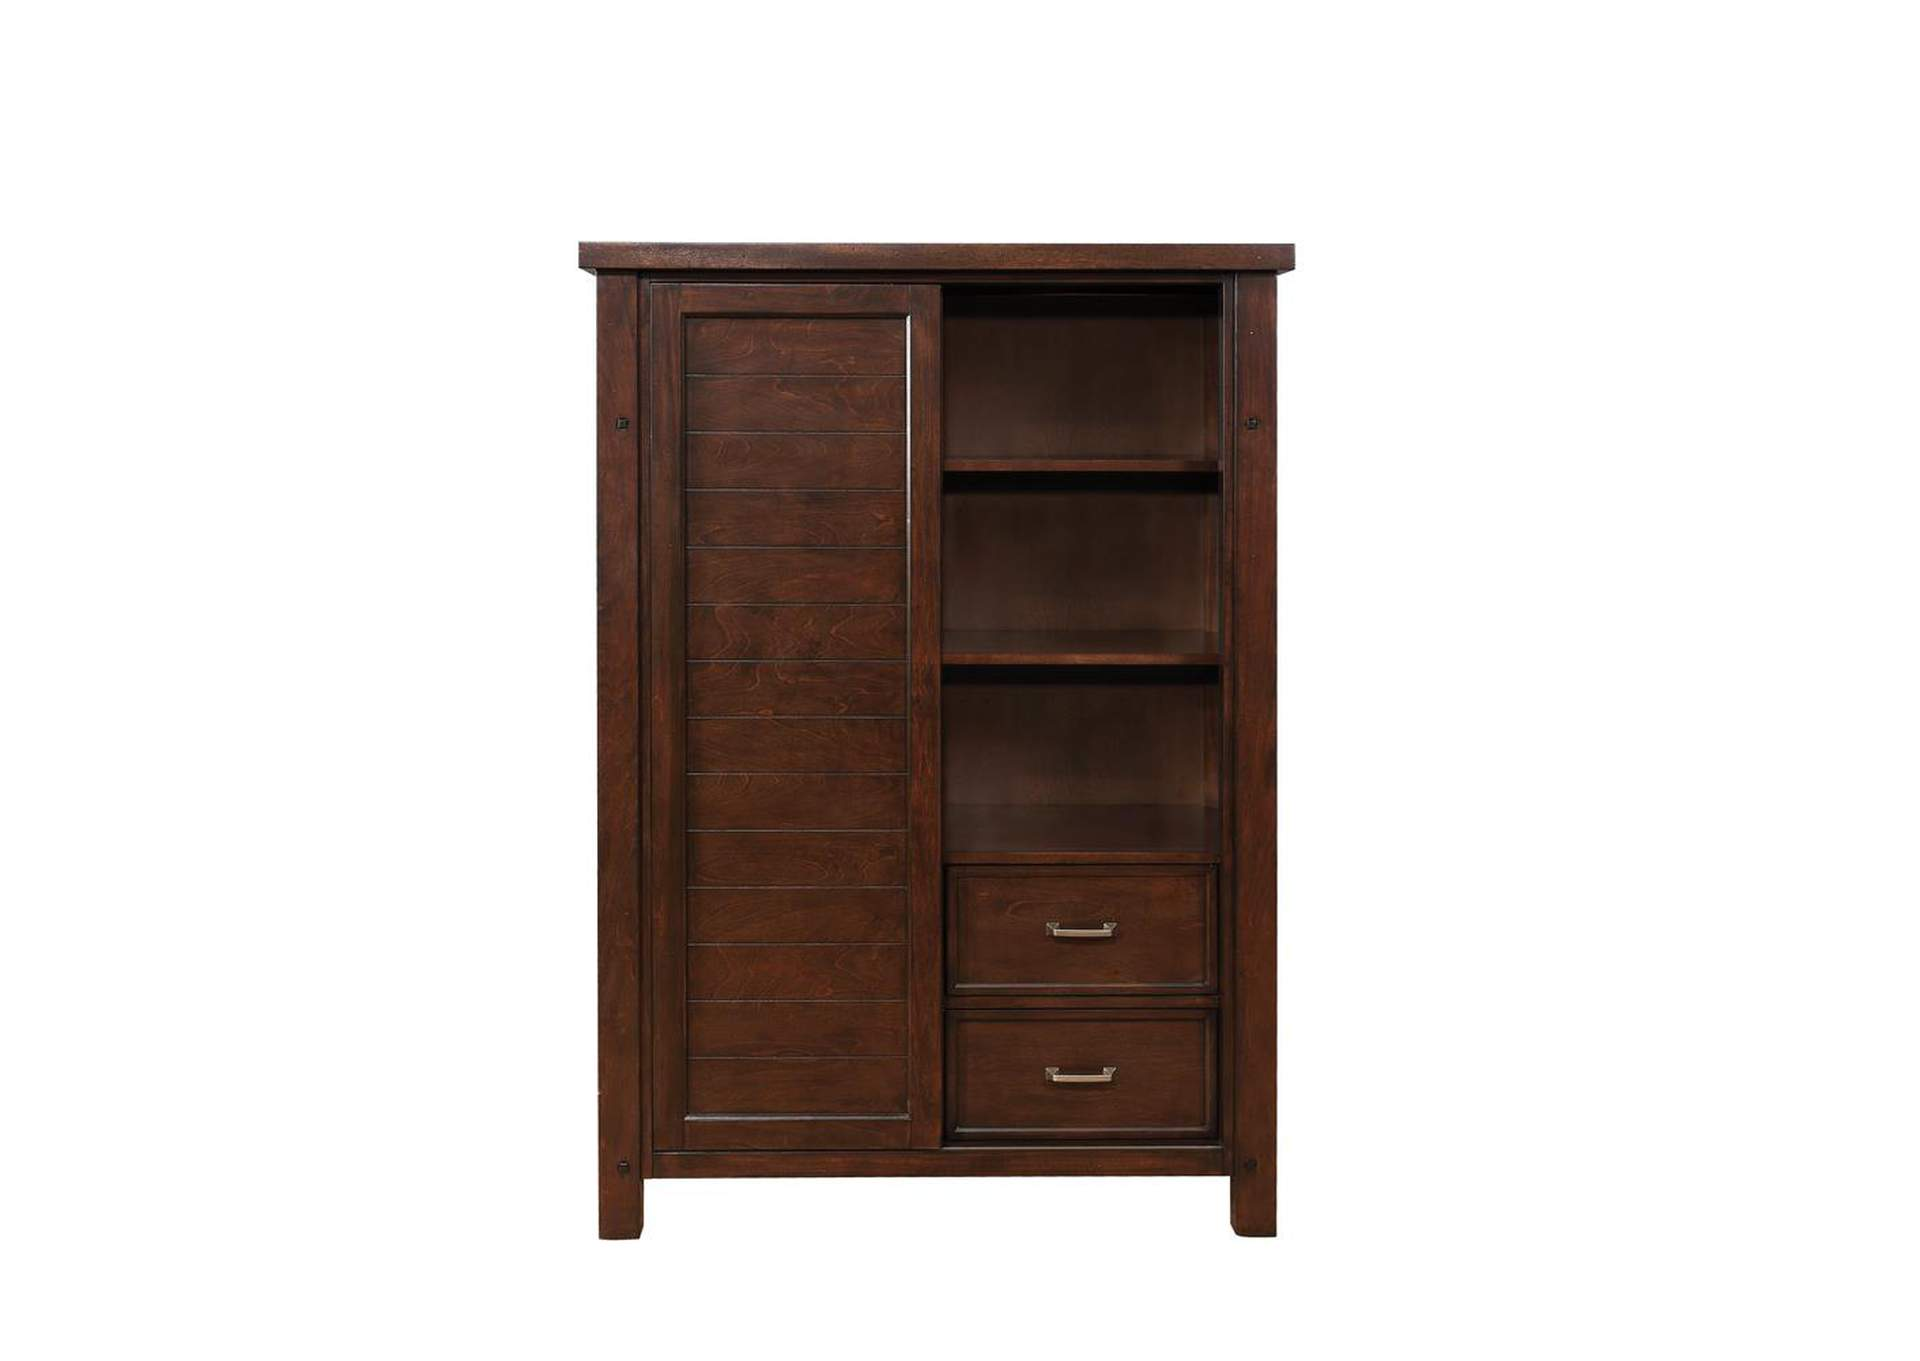 Barstow Pinot Noir Door Chest,Coaster Furniture